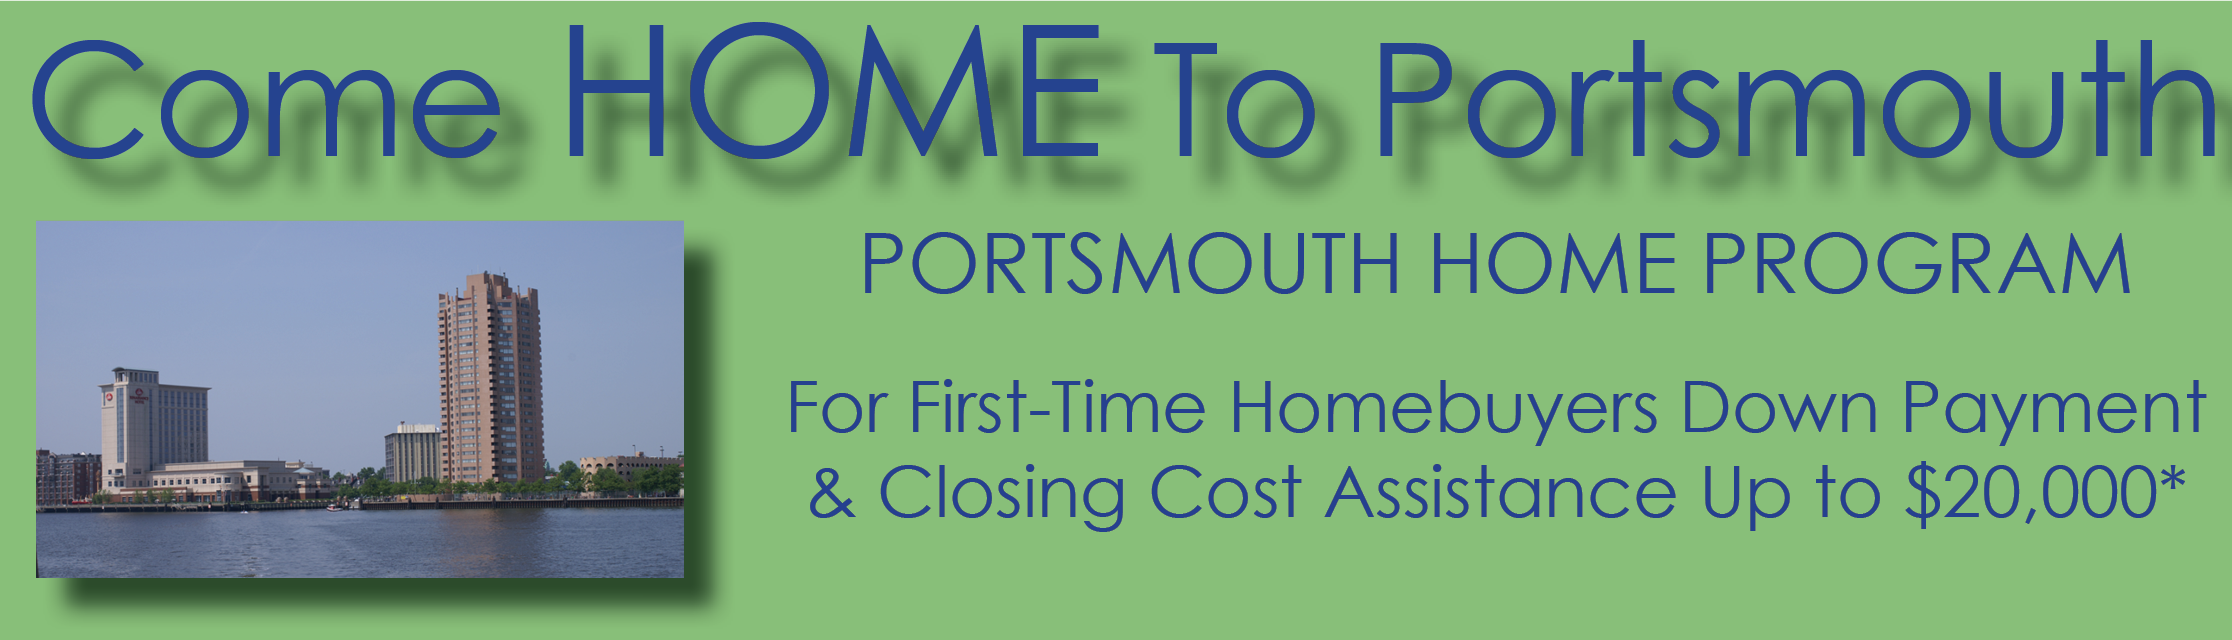 Come HOME to Portsmouth Banner